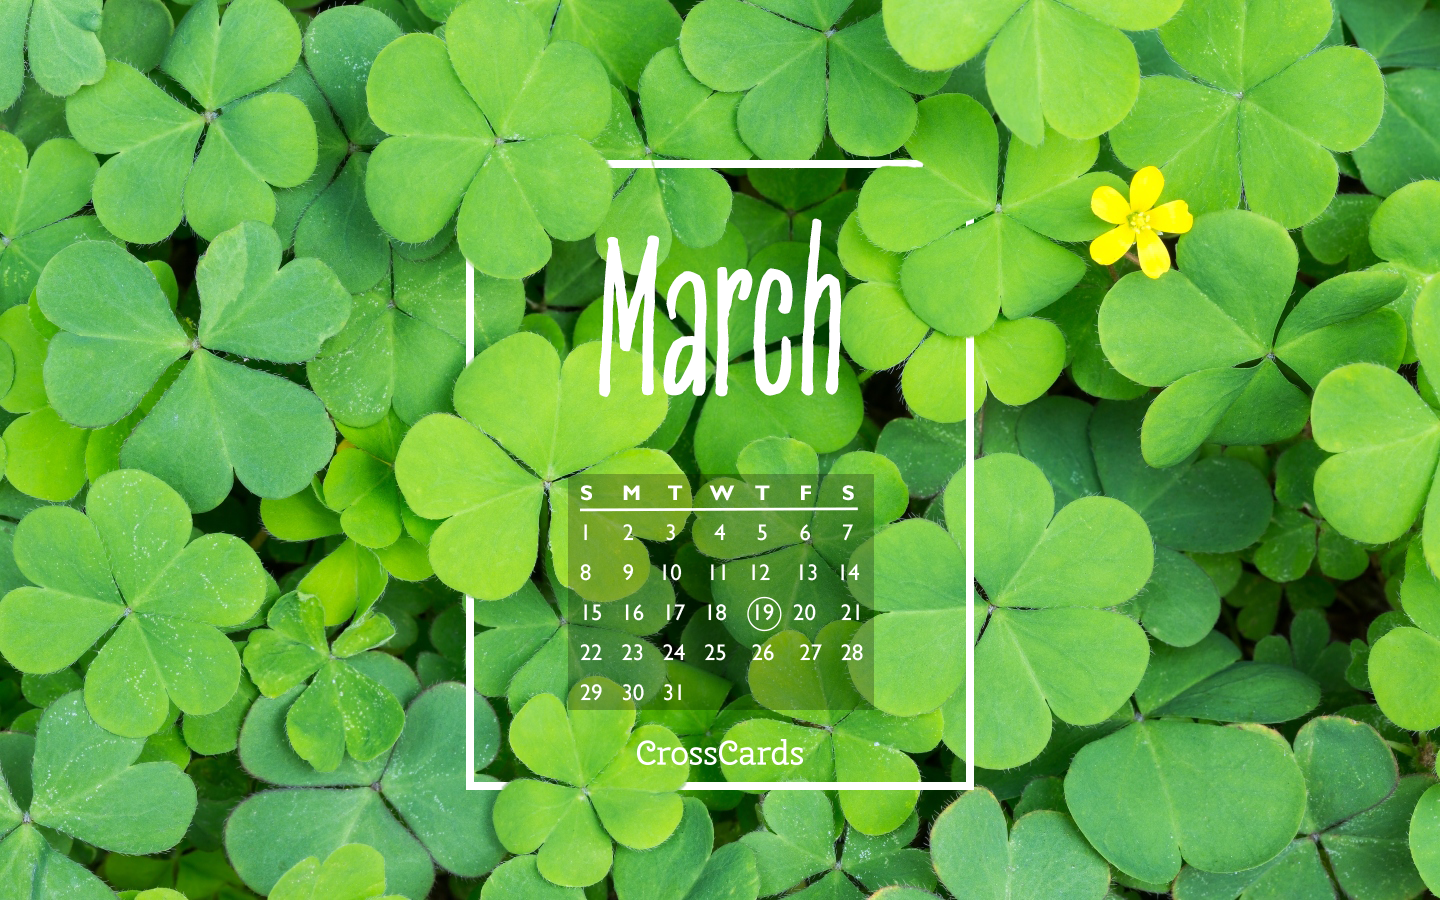 March 2020 - Clover mobile phone wallpaper